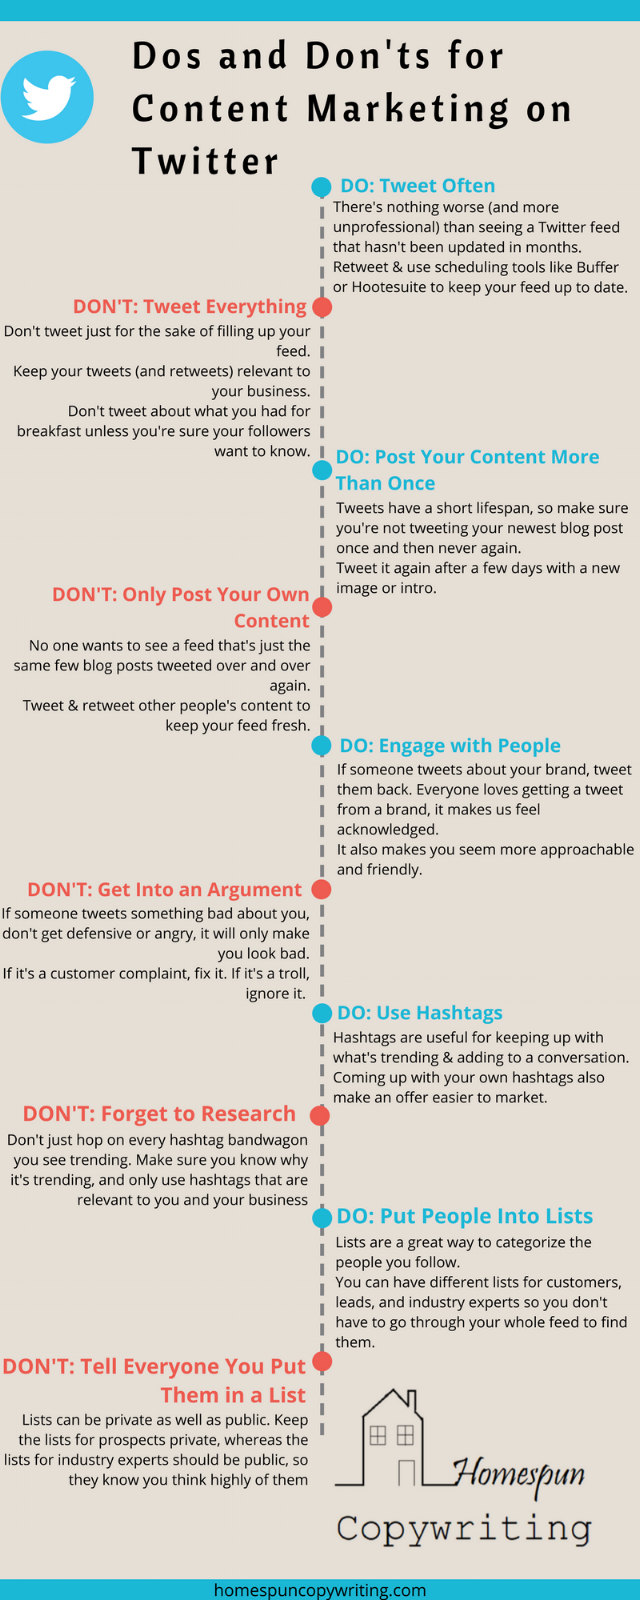 Twitter-Content-Marketing-Dos-and-Donts-Infographic